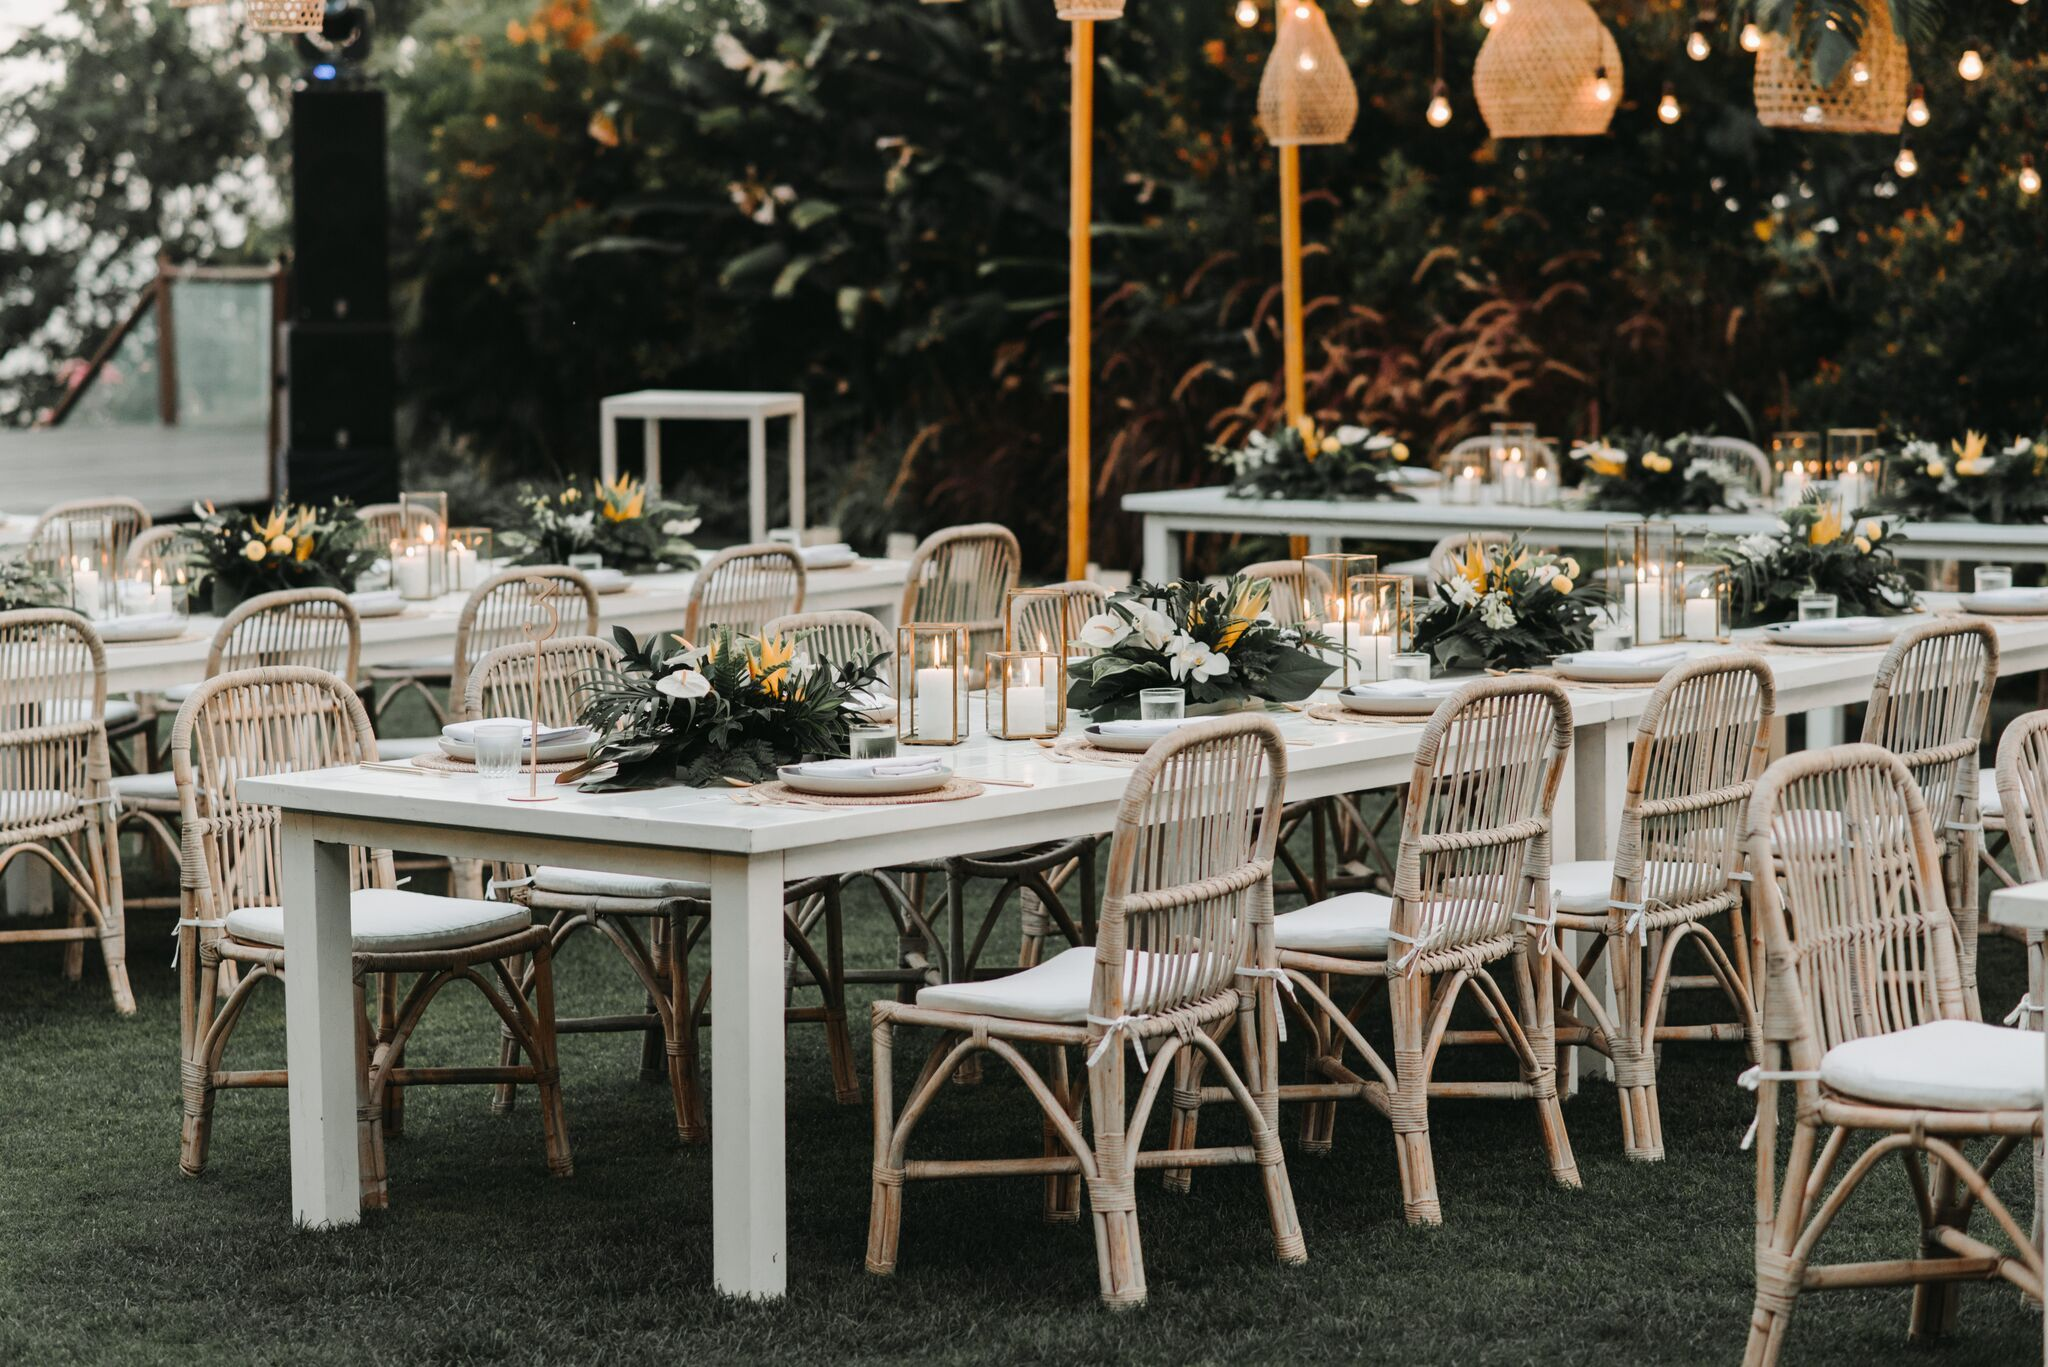 Bali Event Hire Jessica Michael Wedding Furniture Rental Simple Table Decorations White Dining Table